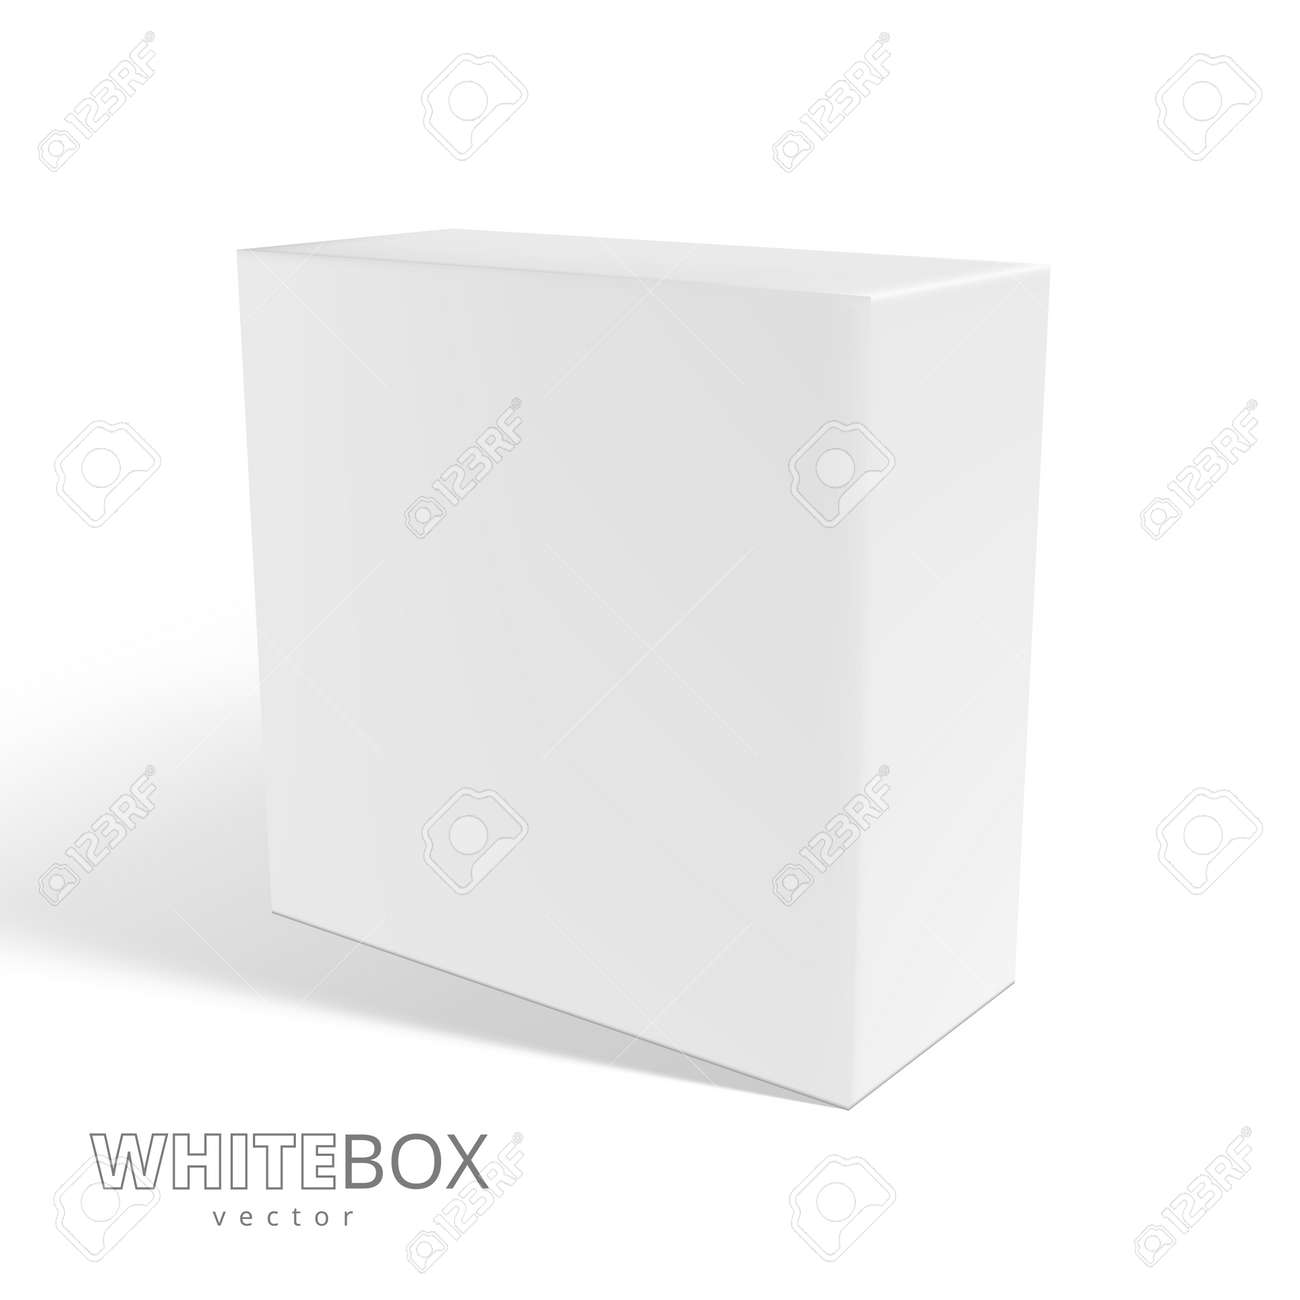 3D White Box With Shadow Isolated On Background - 169413601